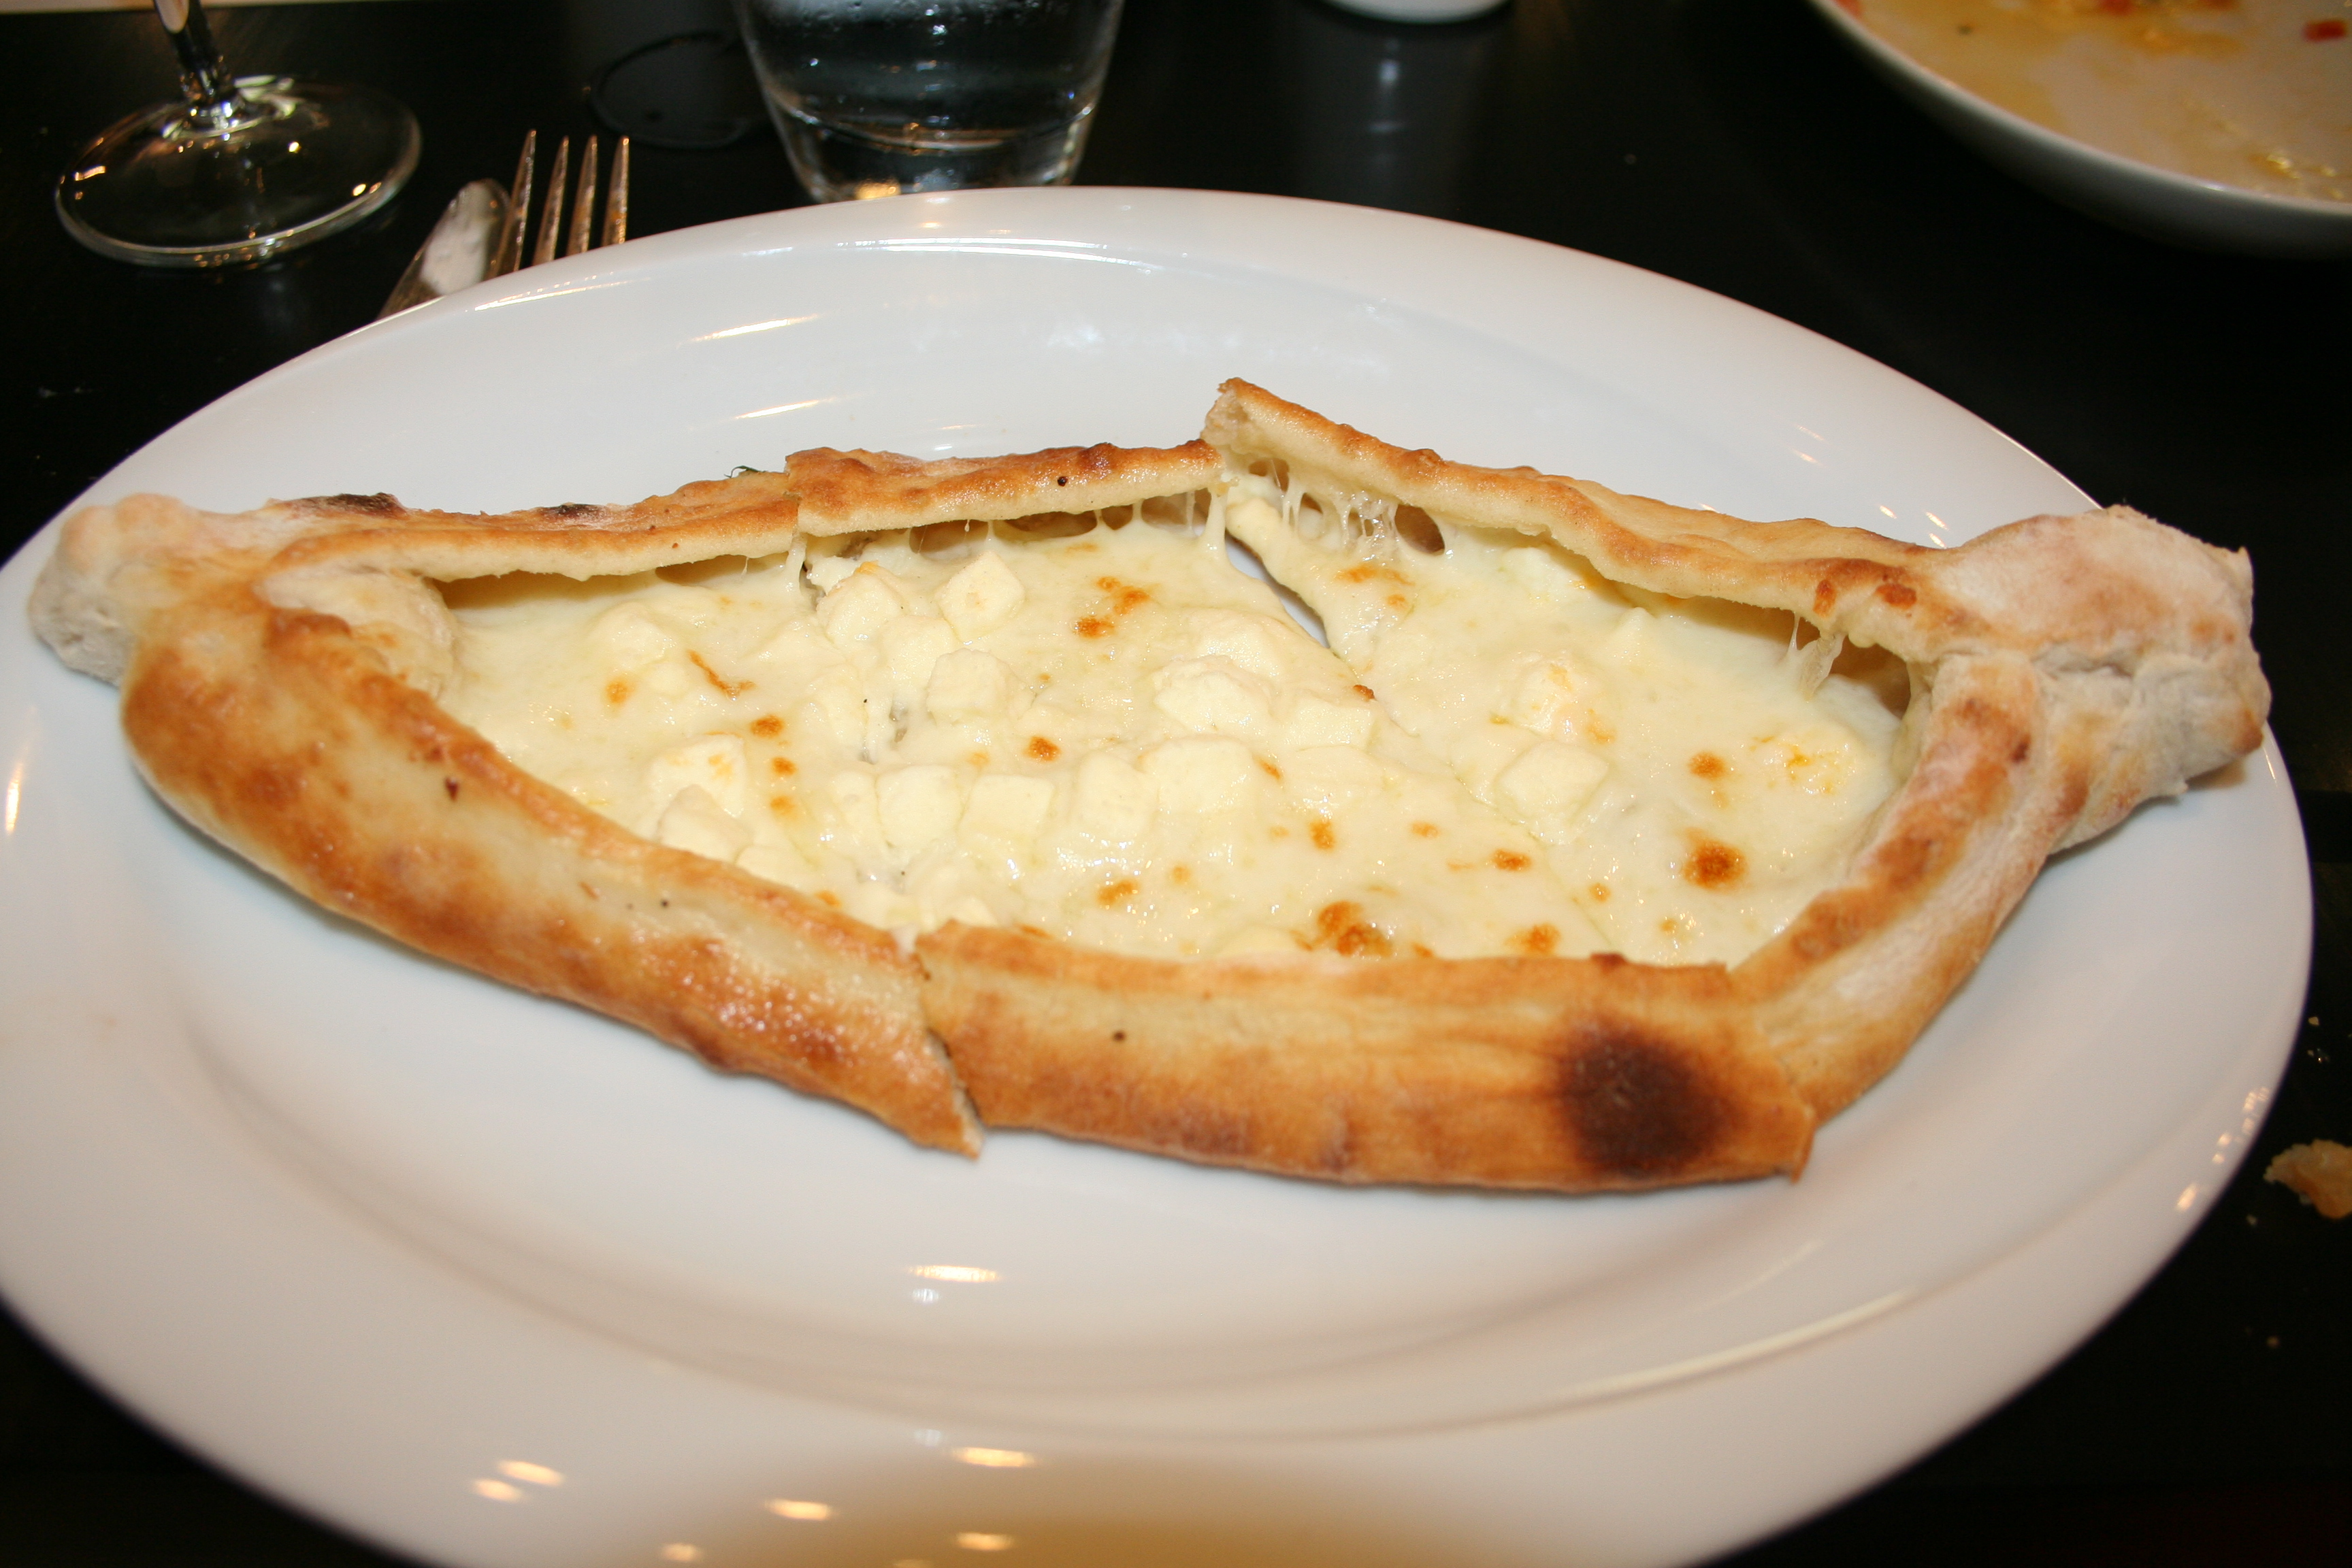 They peynirli pide flatbread is cheesy and delicious. (Photo: Mark Heckathorn/DC on Heels)